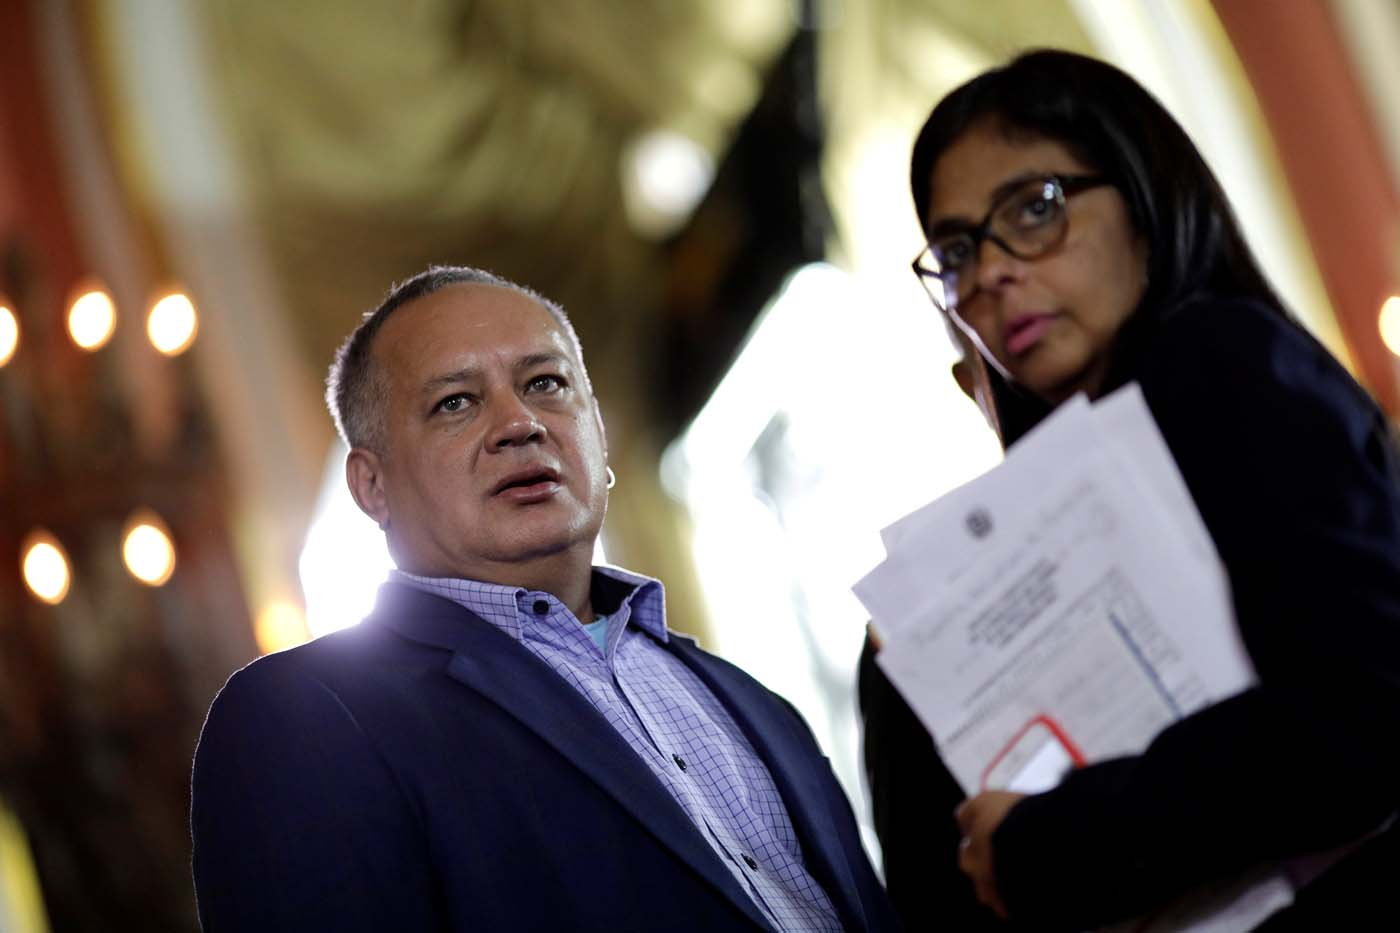 National Constituent Assembly member Diosdado Cabello and its president Delcy Rodriguez attend Tarek William Saab's (not pictured) appointment ceremony as new chief prosecutor in Caracas, Venezuela, August 5, 2017. REUTERS/Ueslei Marcelino